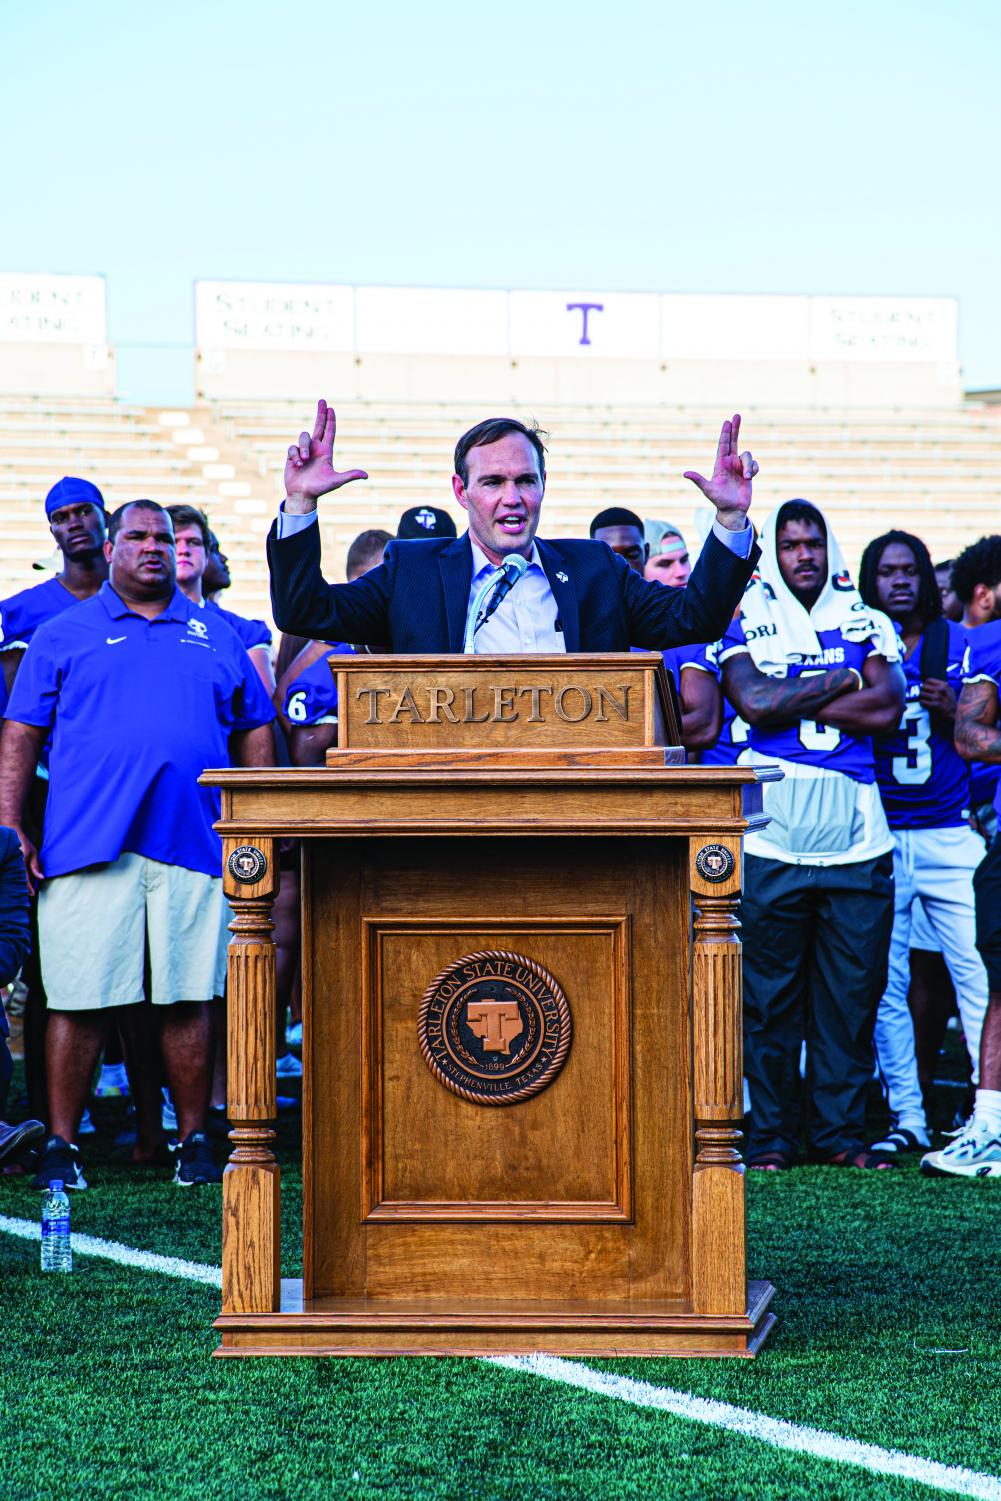 Dr. Hurley shows his Tarleton spirit during his address at grand opening of the Lonn Reisman Athletic Center at Memorial Stadium on Tuesday, August 20.